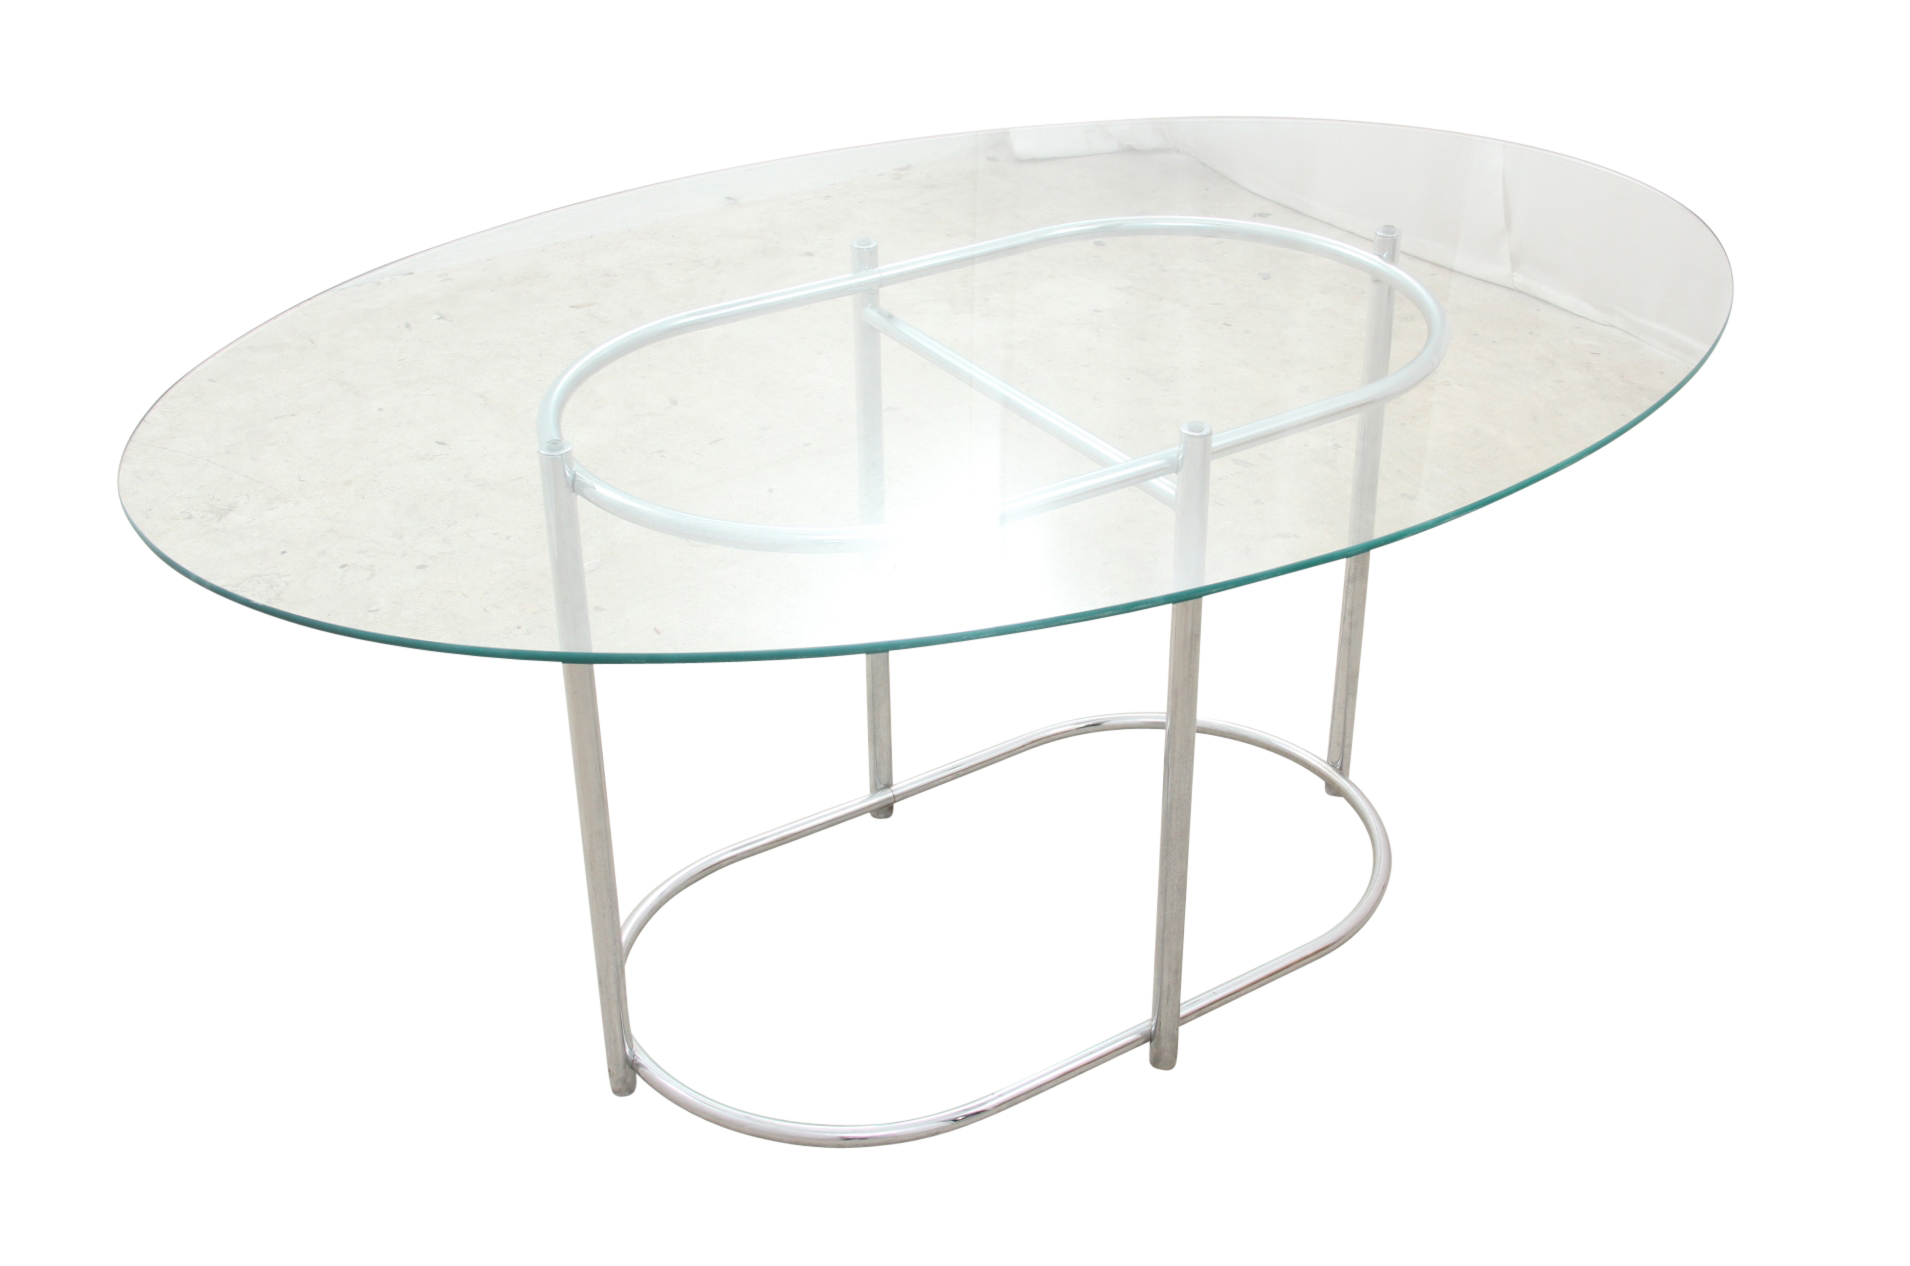 Chrome amp Glass Dining Table Chairish : 47b9fa4a 31ed 4f66 ae98 ef9caf939427aspectfitampwidth640ampheight640 from www.chairish.com size 640 x 640 jpeg 16kB